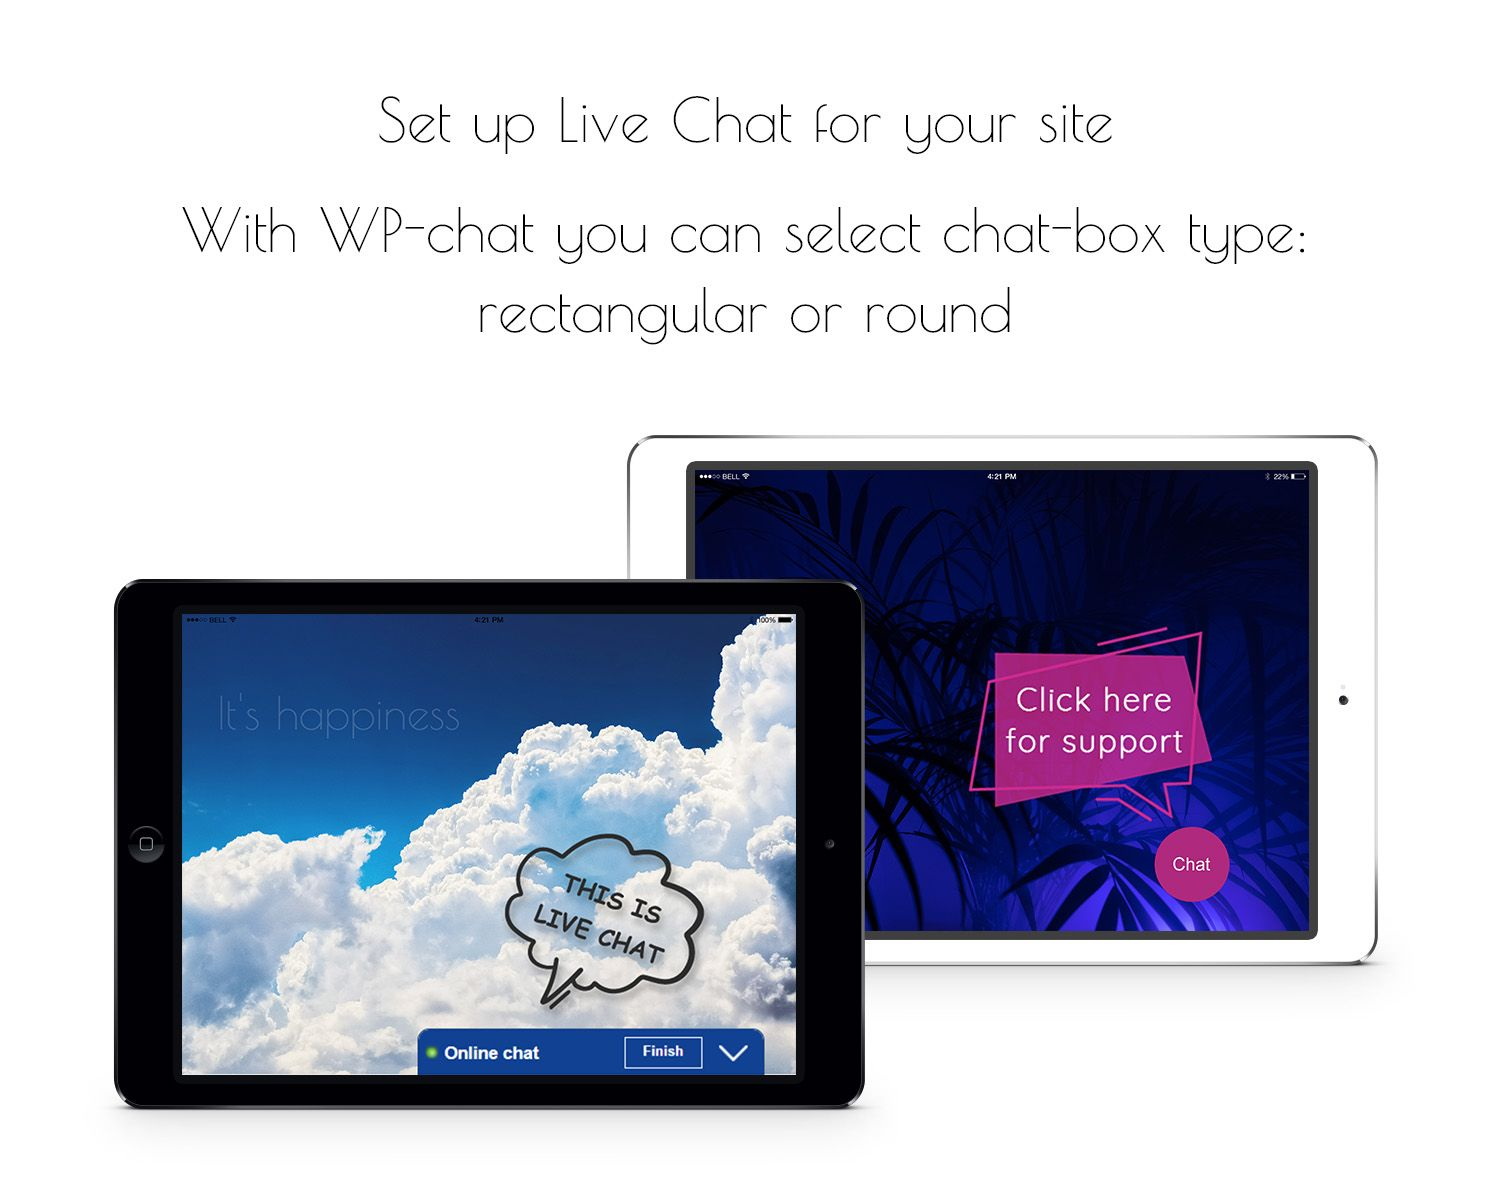 Live chat new design feature be more friendly and interesting to